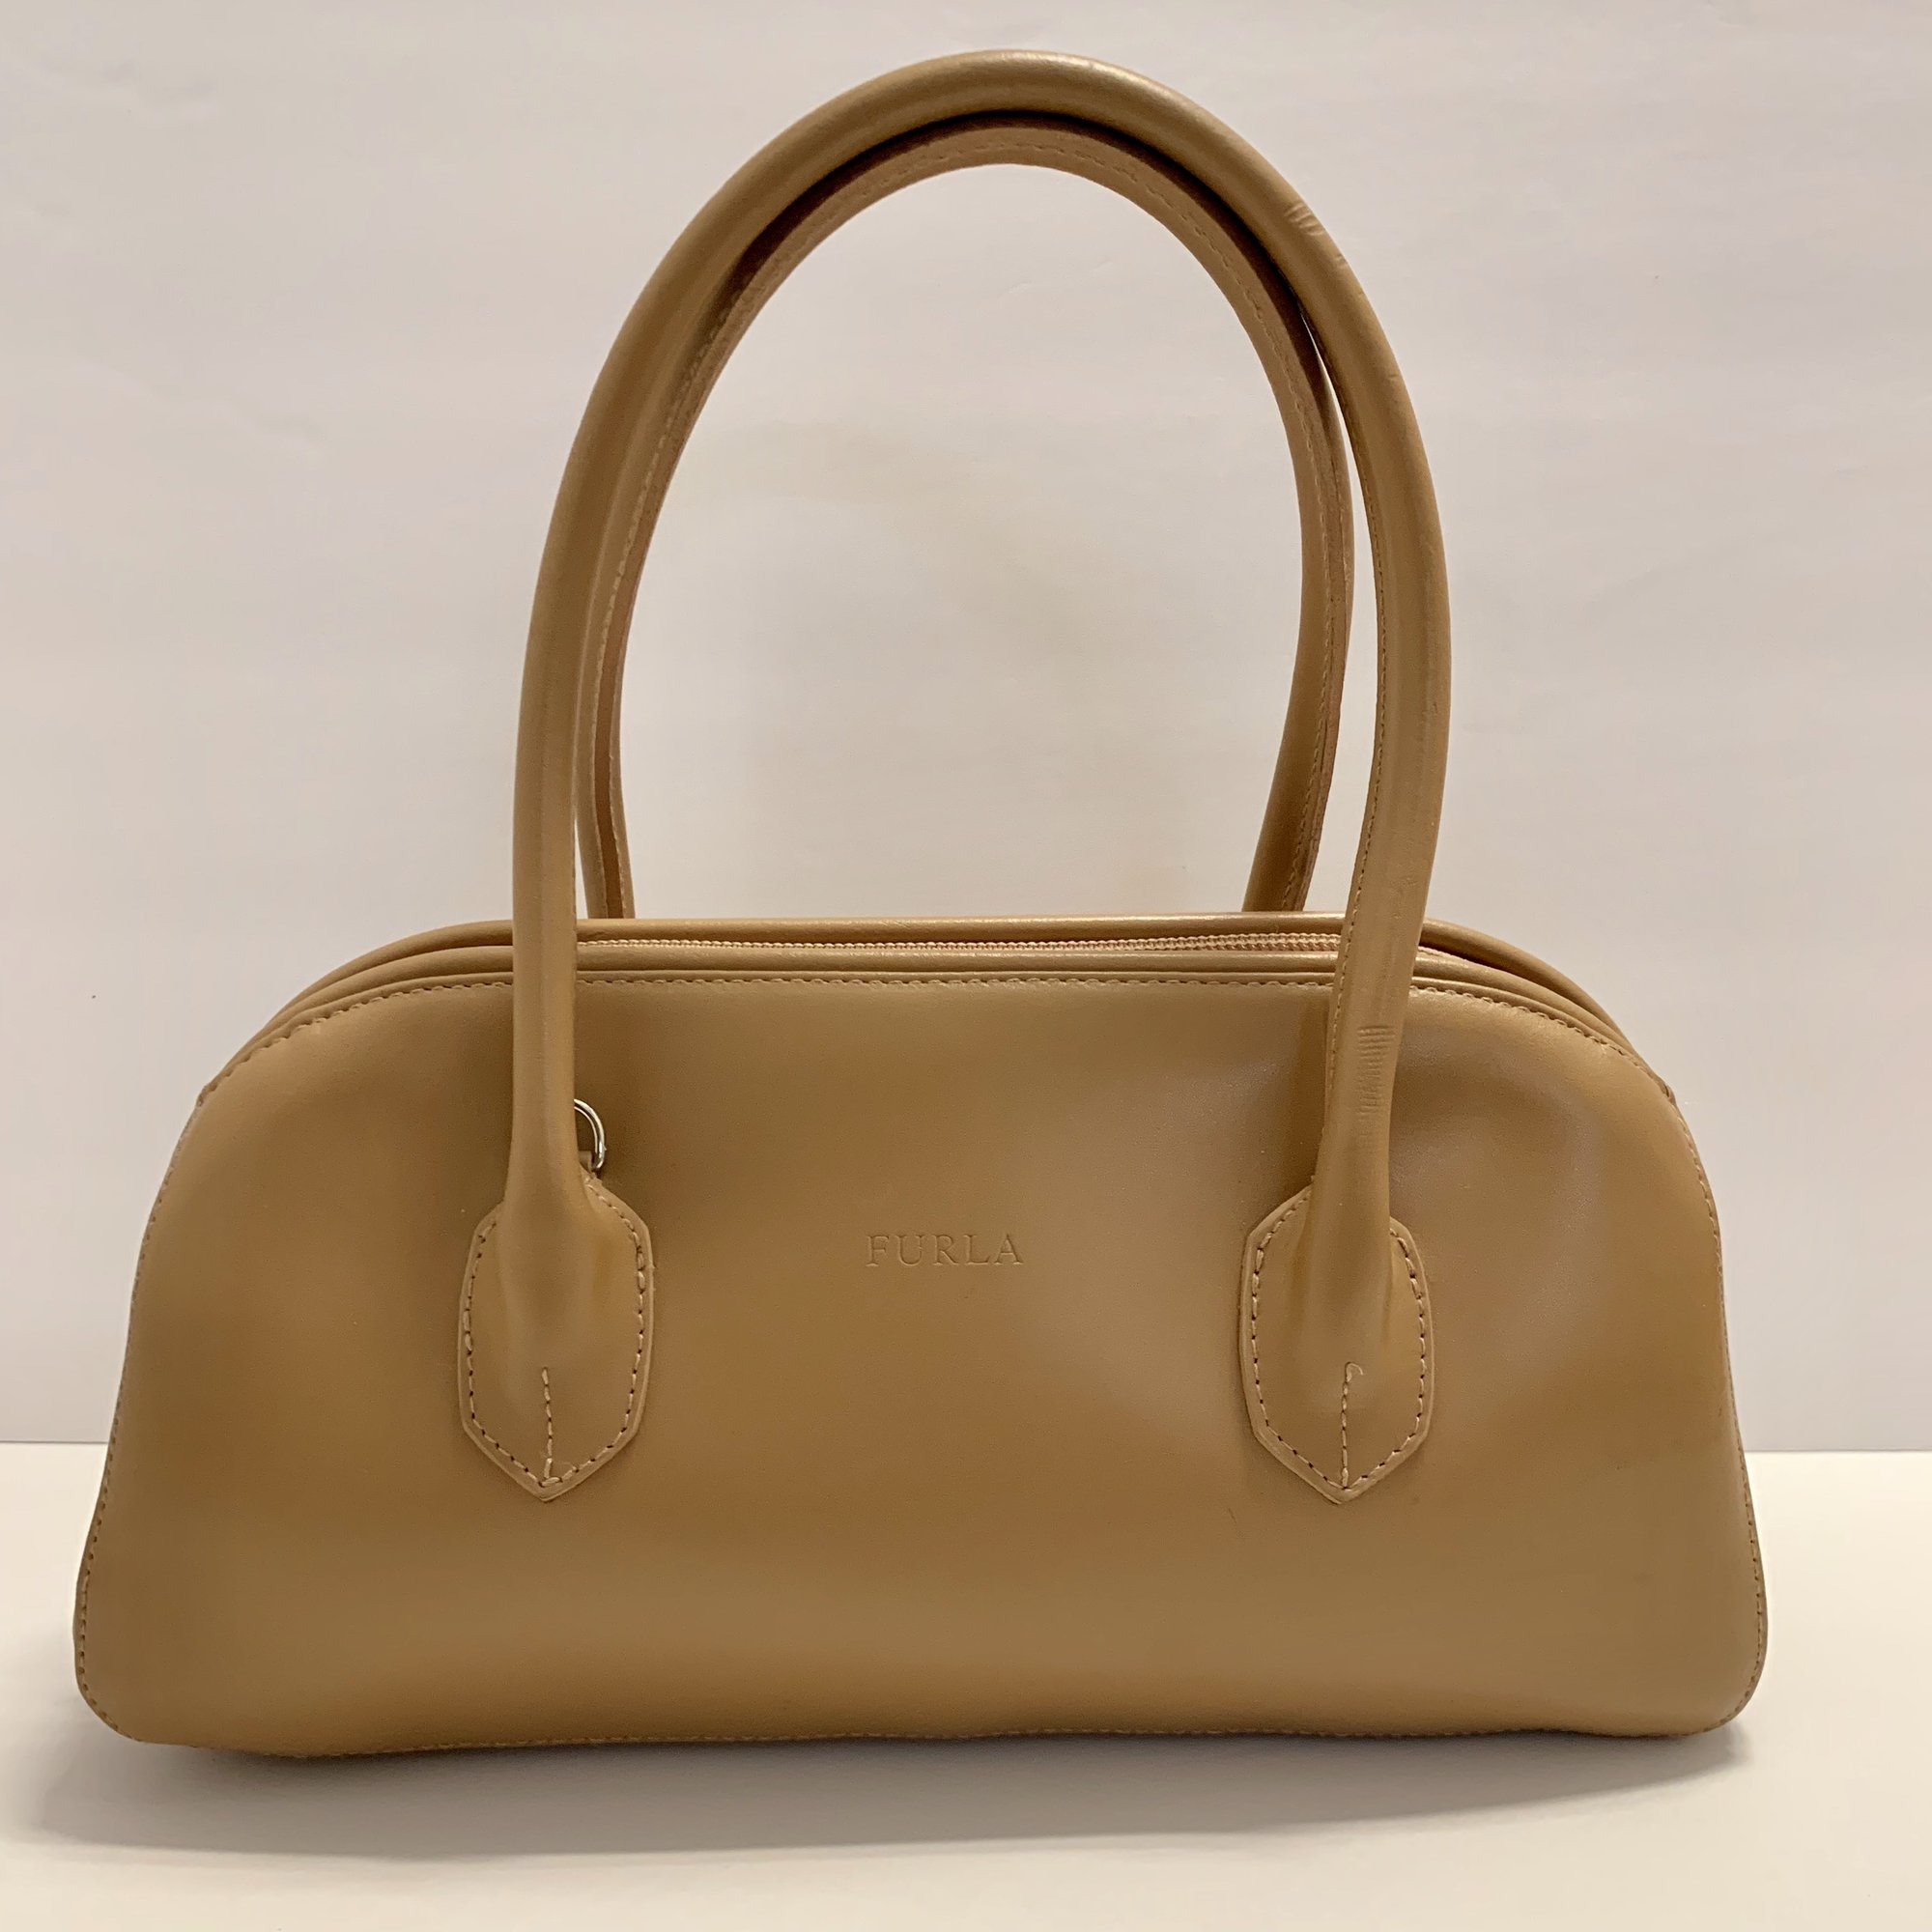 Furla Leather Satchel, Camel